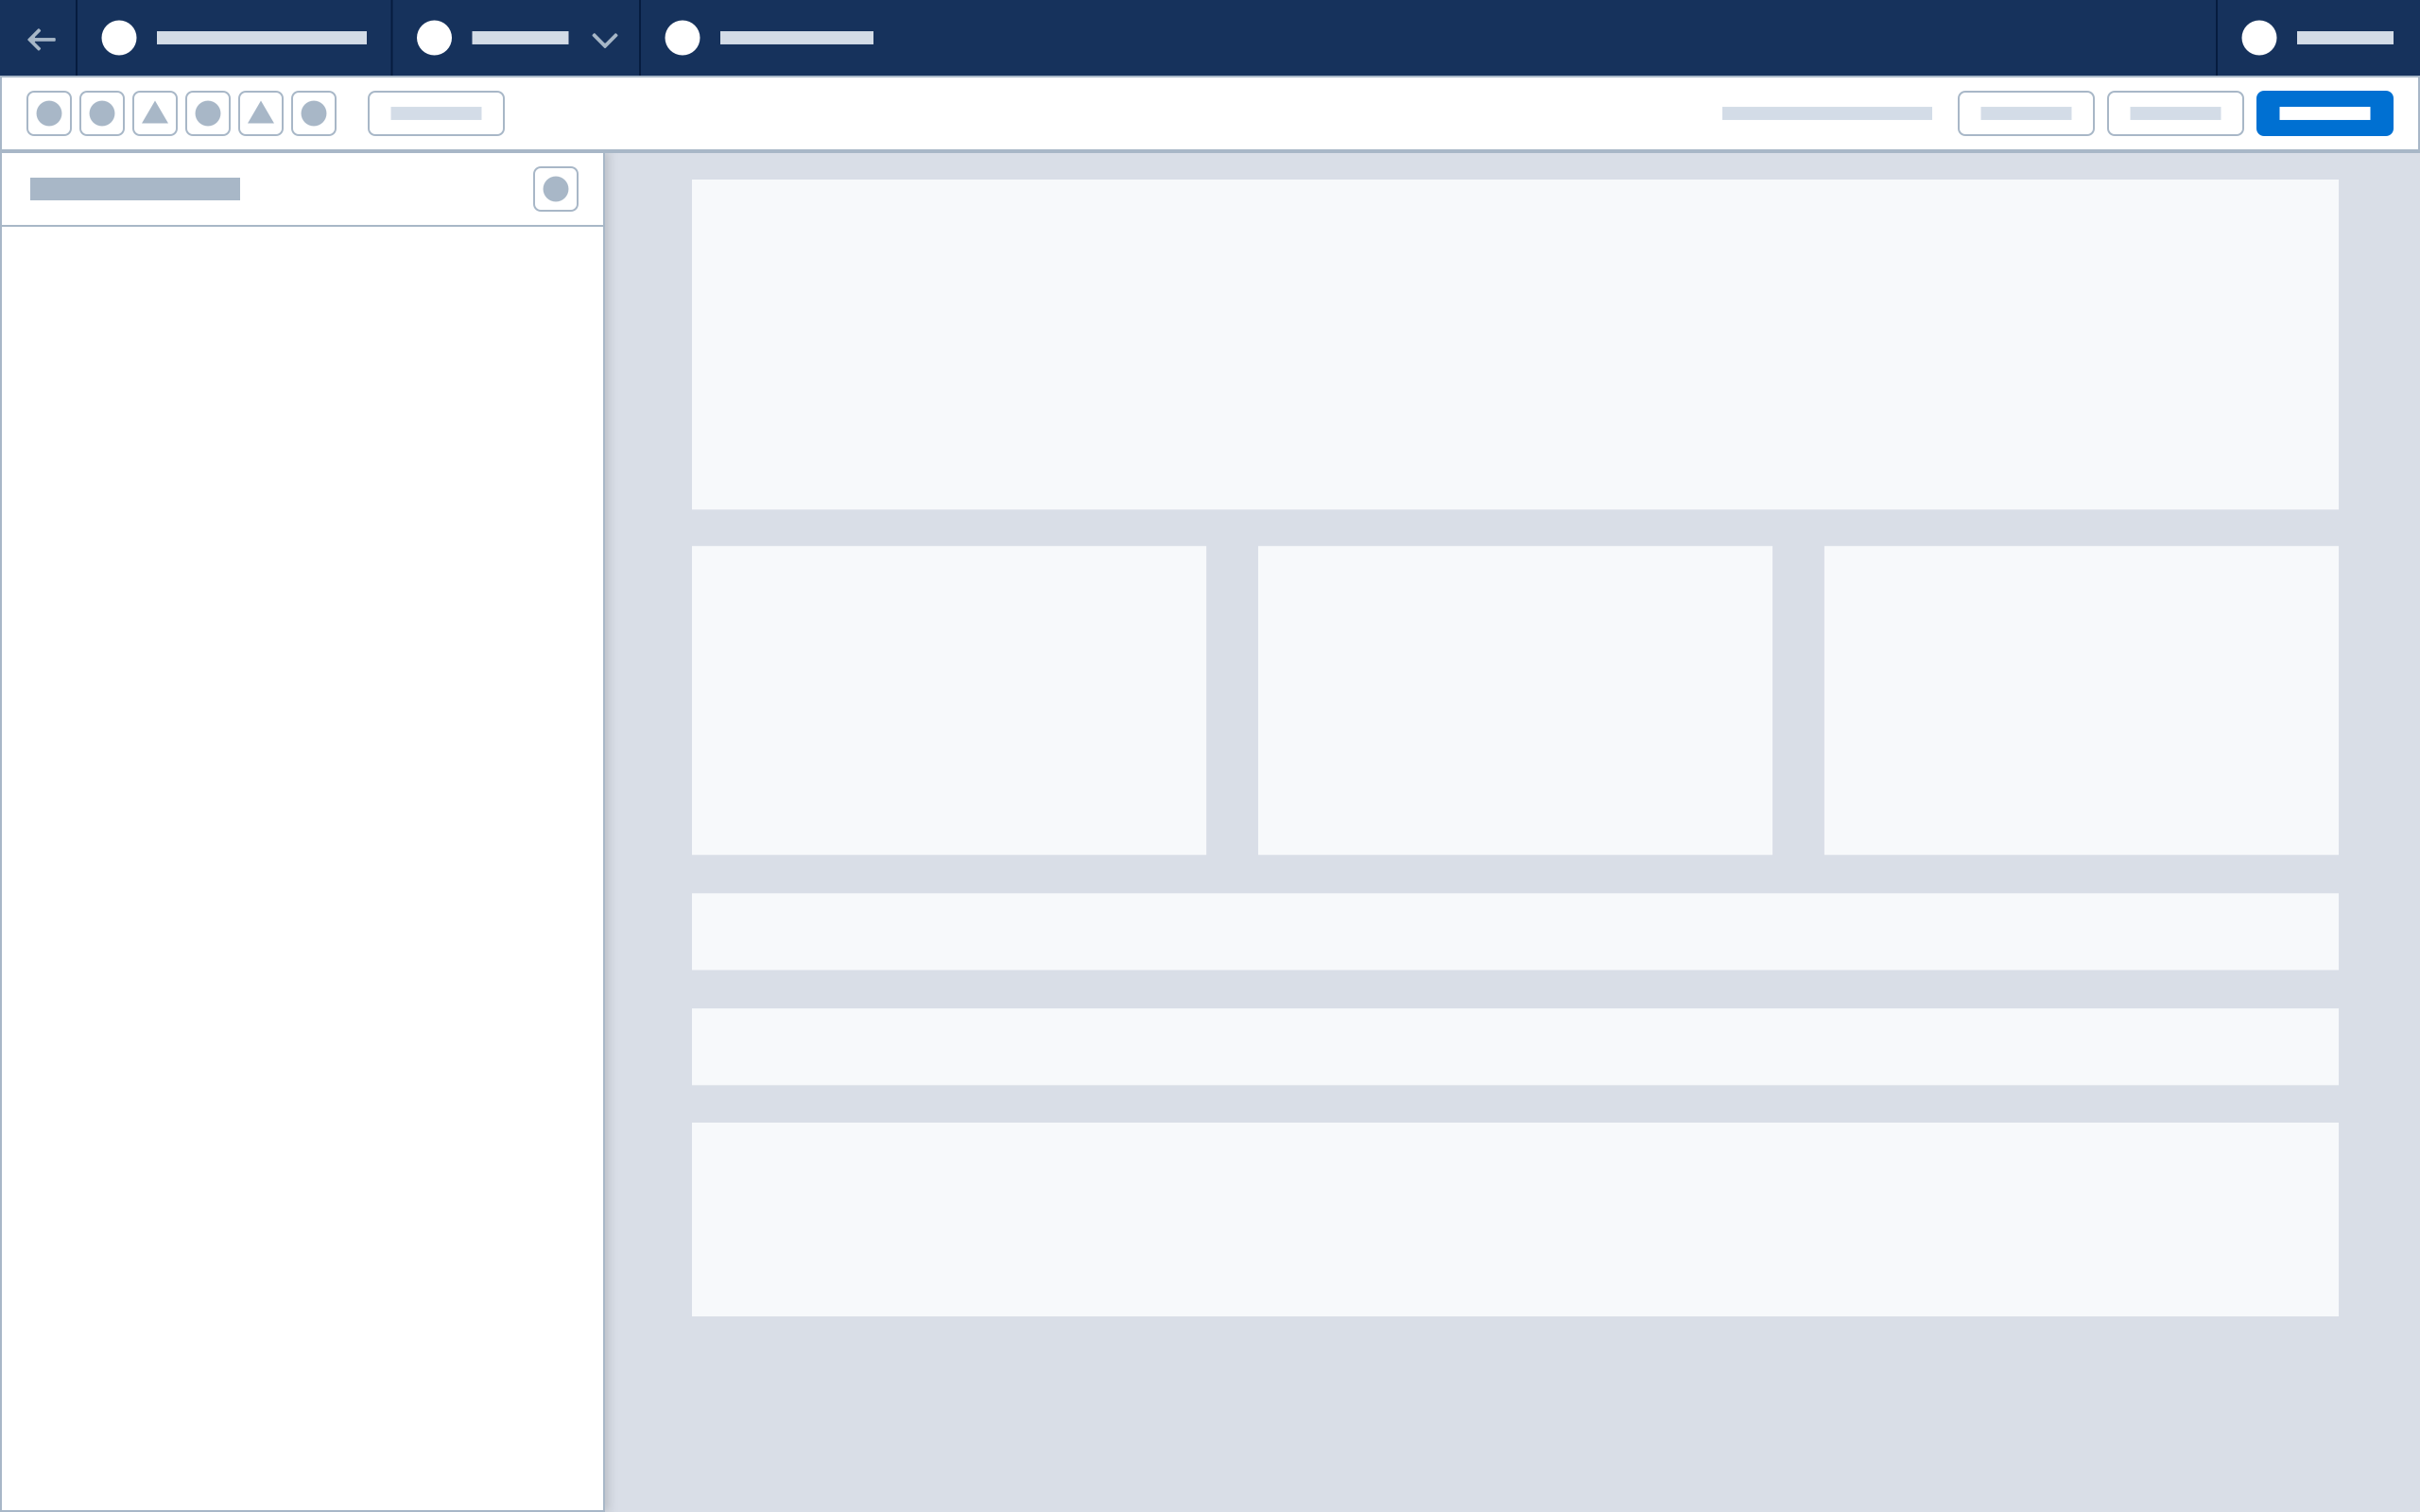 A wireframe showing panel drawer behavior.